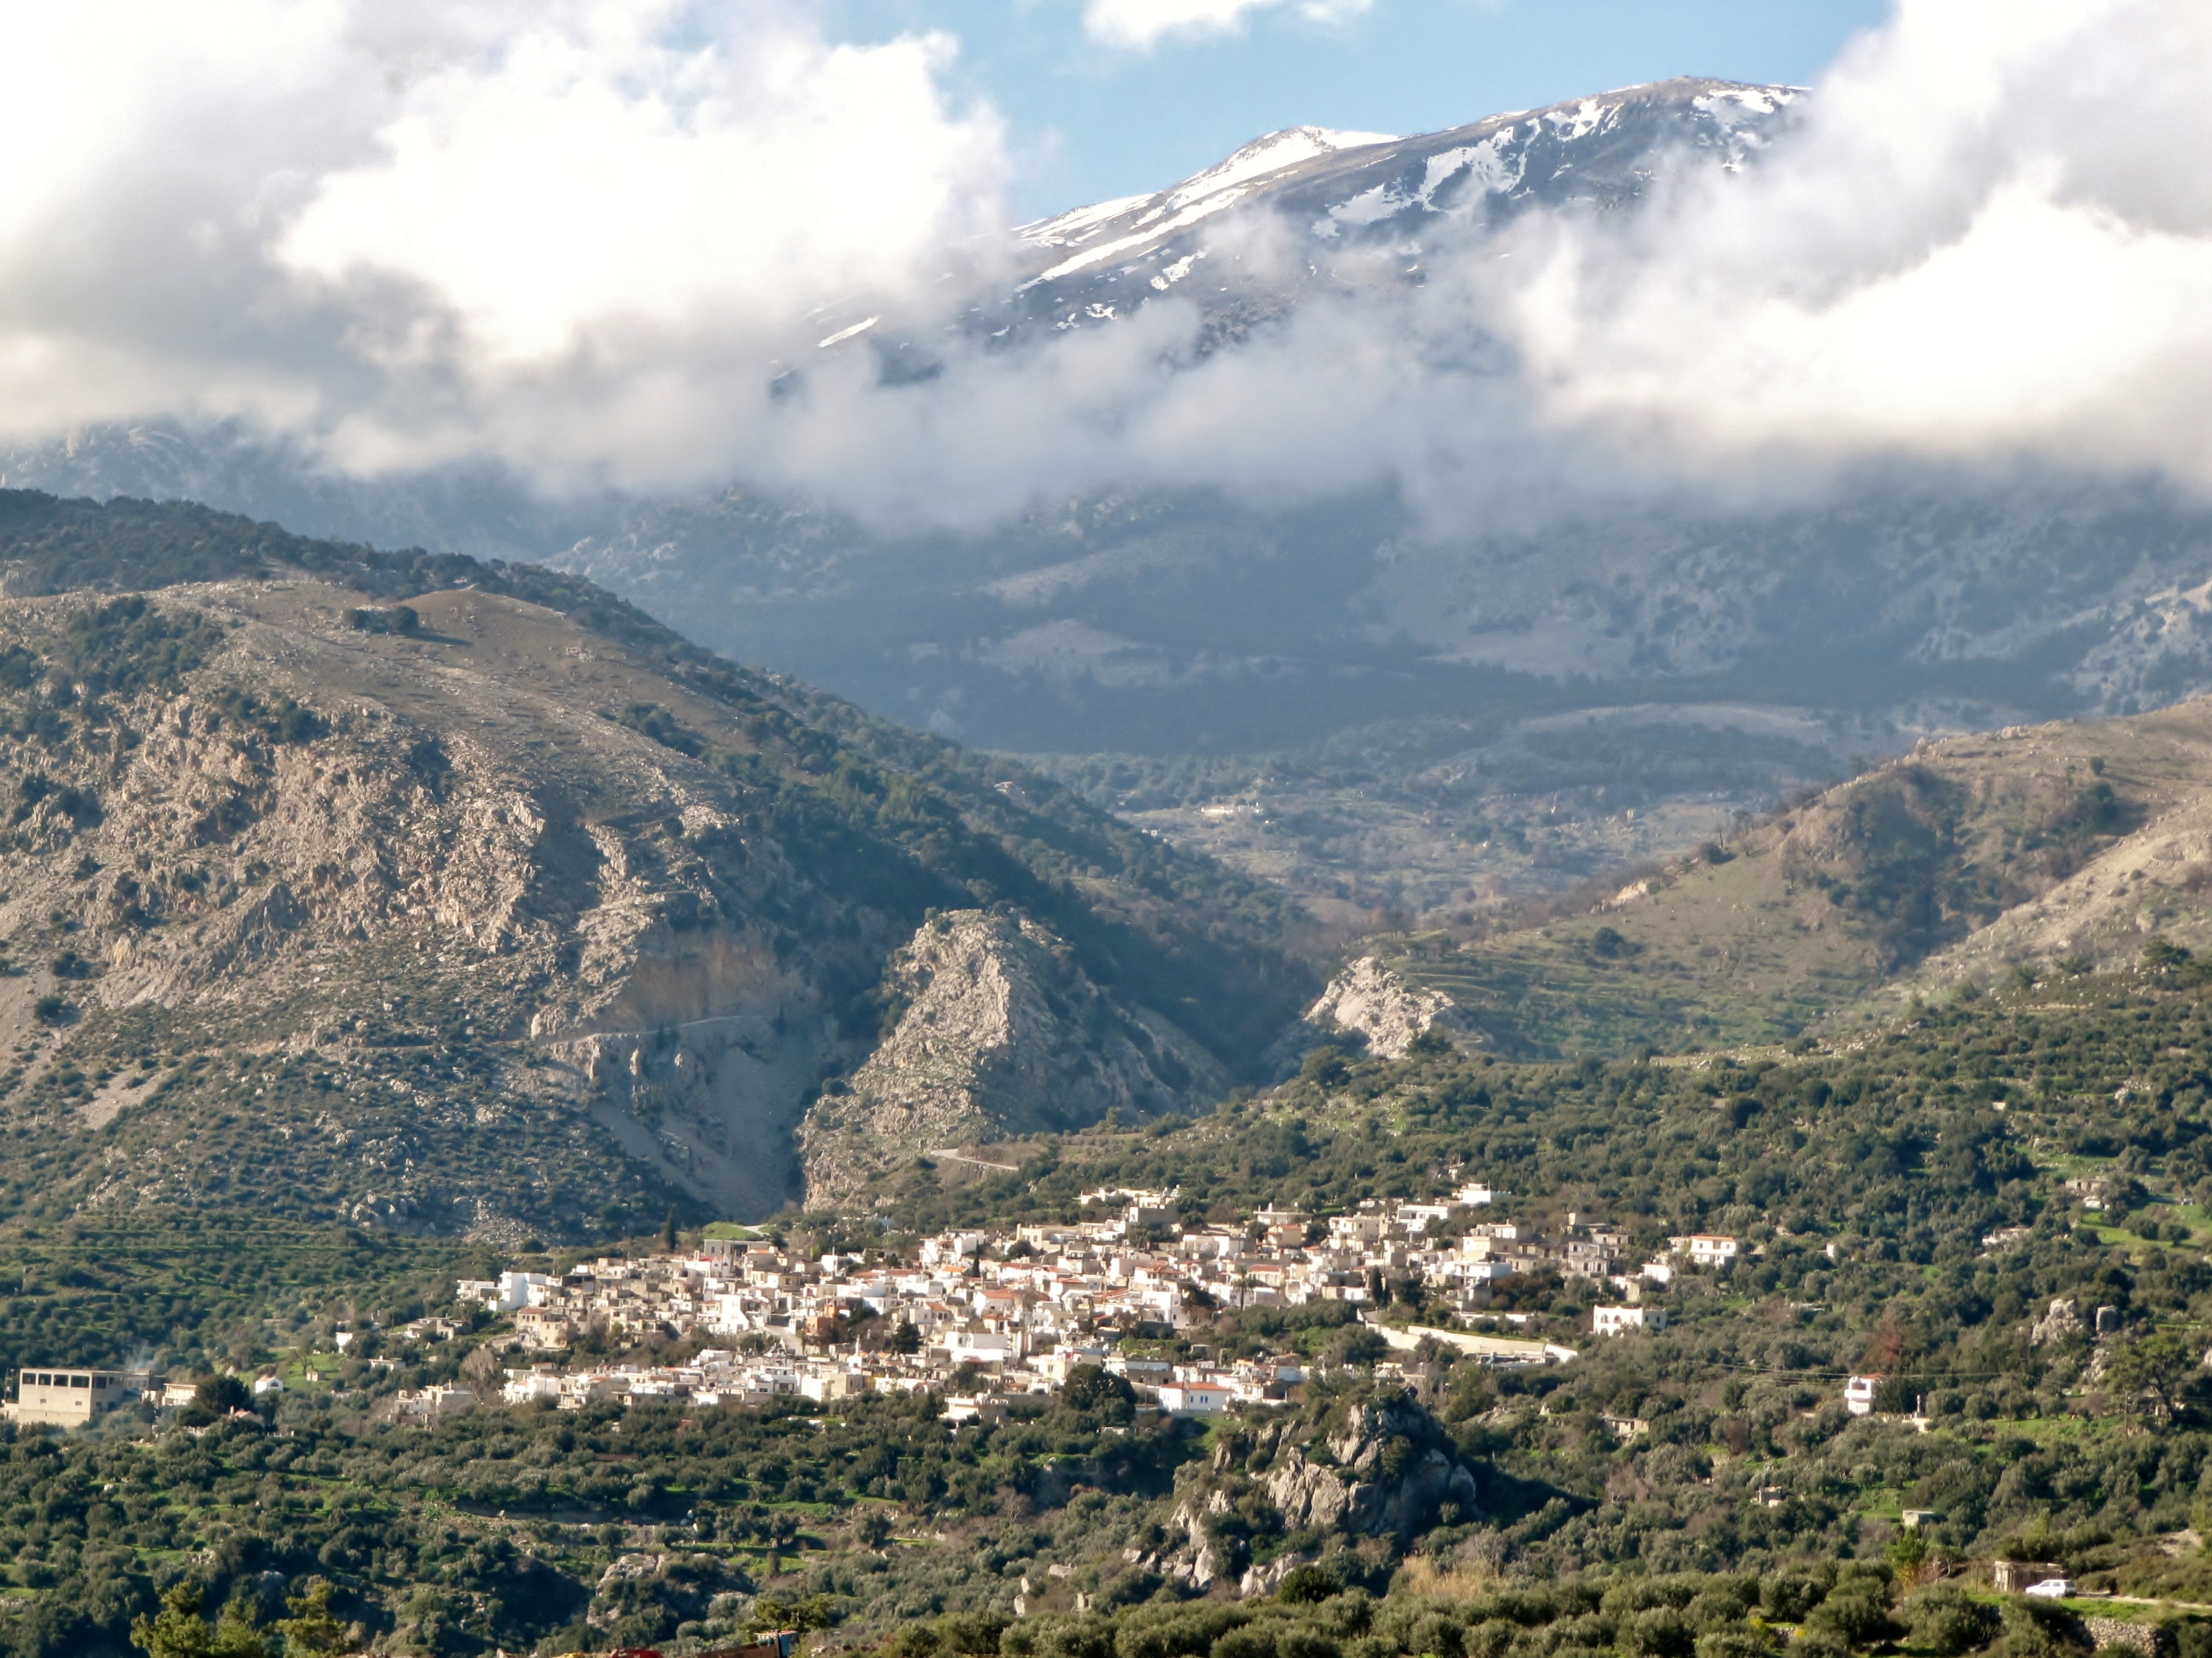 by village berg mountain moln clouds snö snow vandra vandring hike hiking walk walking crete kreta